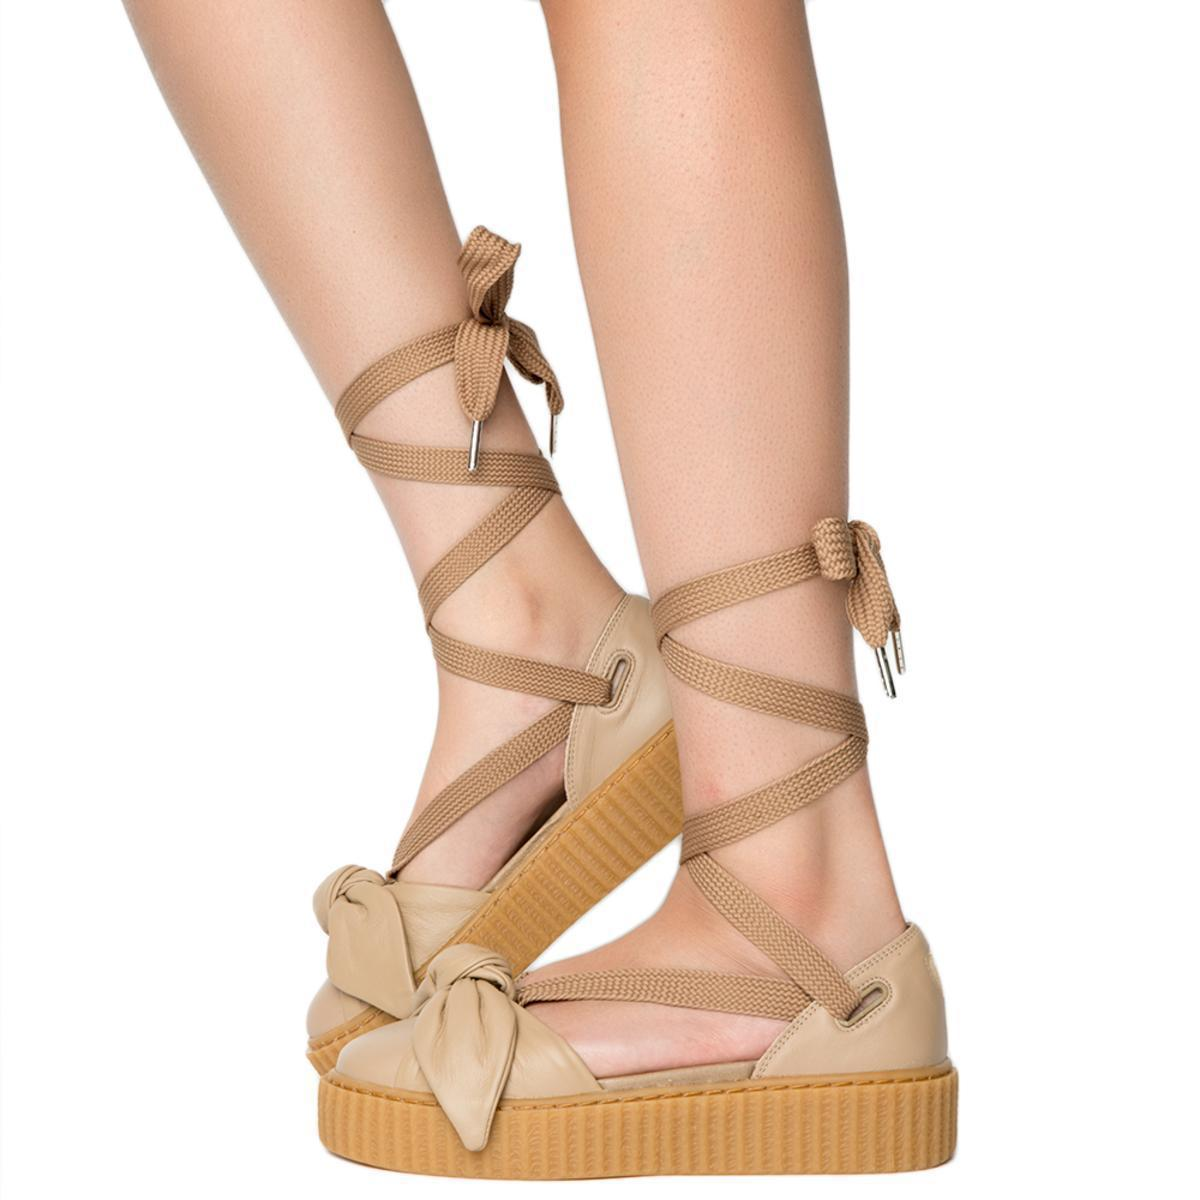 promo code 27913 07bcc Lyst - PUMA Bow Creeper Sandal in Natural